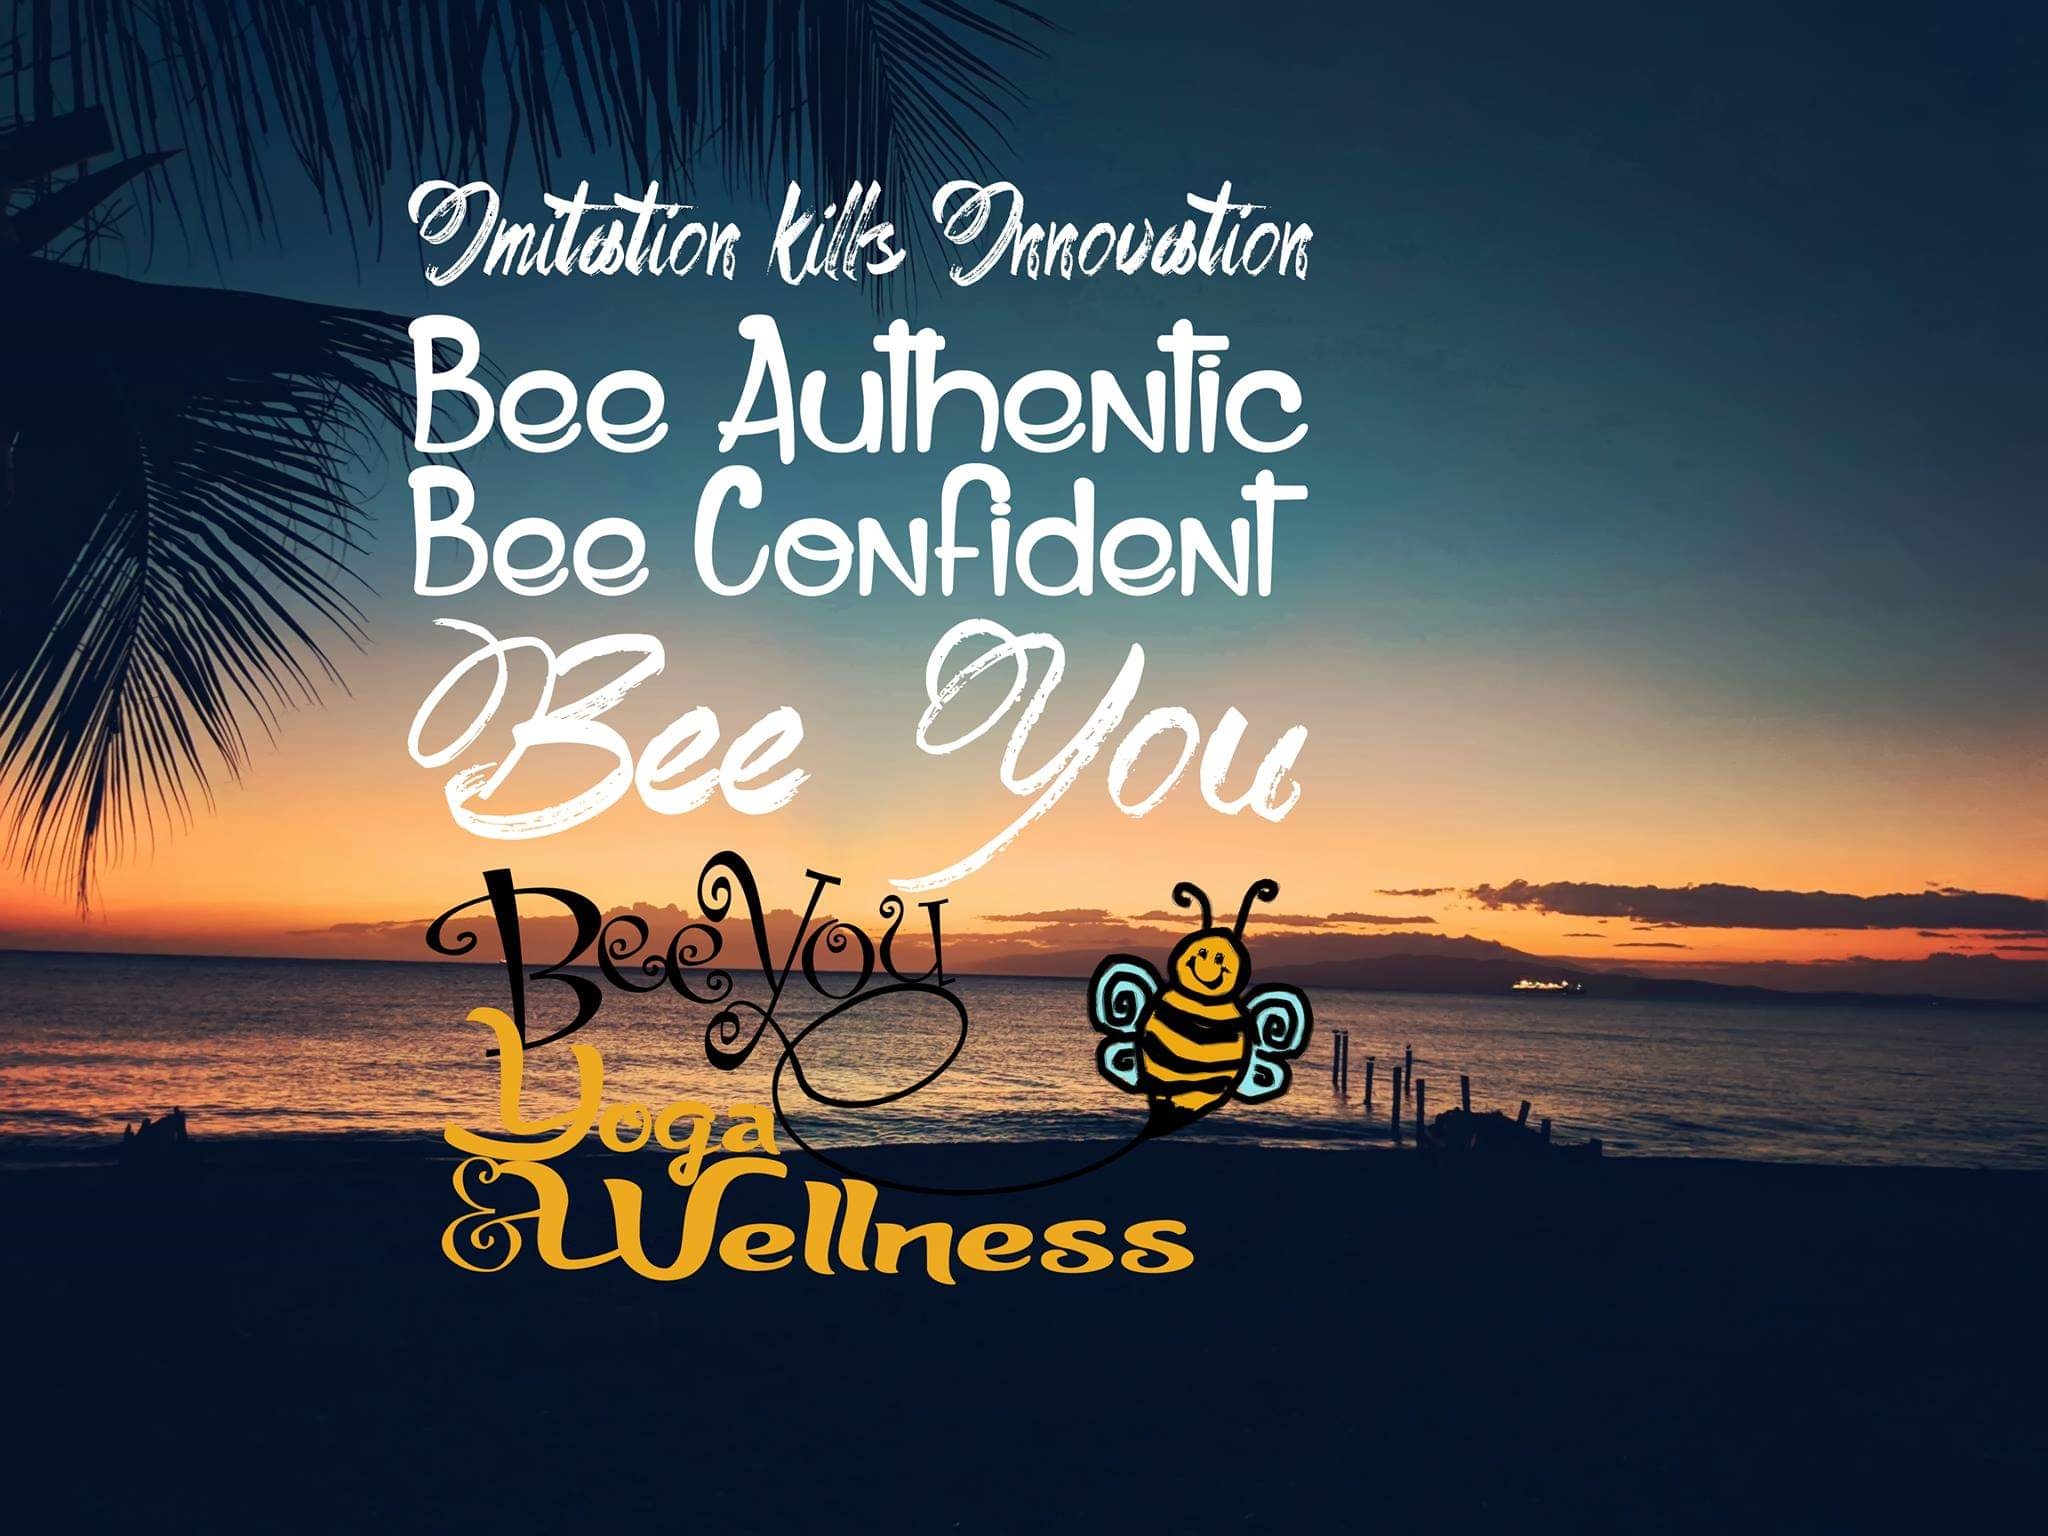 Bee You Yoga and Wellness - Yoga Therapy, Yoga, Yoga for anxiety, Yoga for depression, Yoga for recovery, y12sr, donation based yoga & meditation for everyone, kids yoga, BARRE, Sadie Nardini Yoga Shred Fusion, Full body conditioning, Yoga Nidra, Swedish massage, myofascial release, PSYCH-K, Reiki, BARRE, ZUMBA, Yoga Shred, Bee You Yoga, Yoga 07885, Yoga 07869, Randolph, Roxbury, Mine Hill, New Jersey, North Jersey, Morris County, Yoga Morris County, Buti Yoga, yogassage, theta healing, therapeutic massage, massage gift certifcates